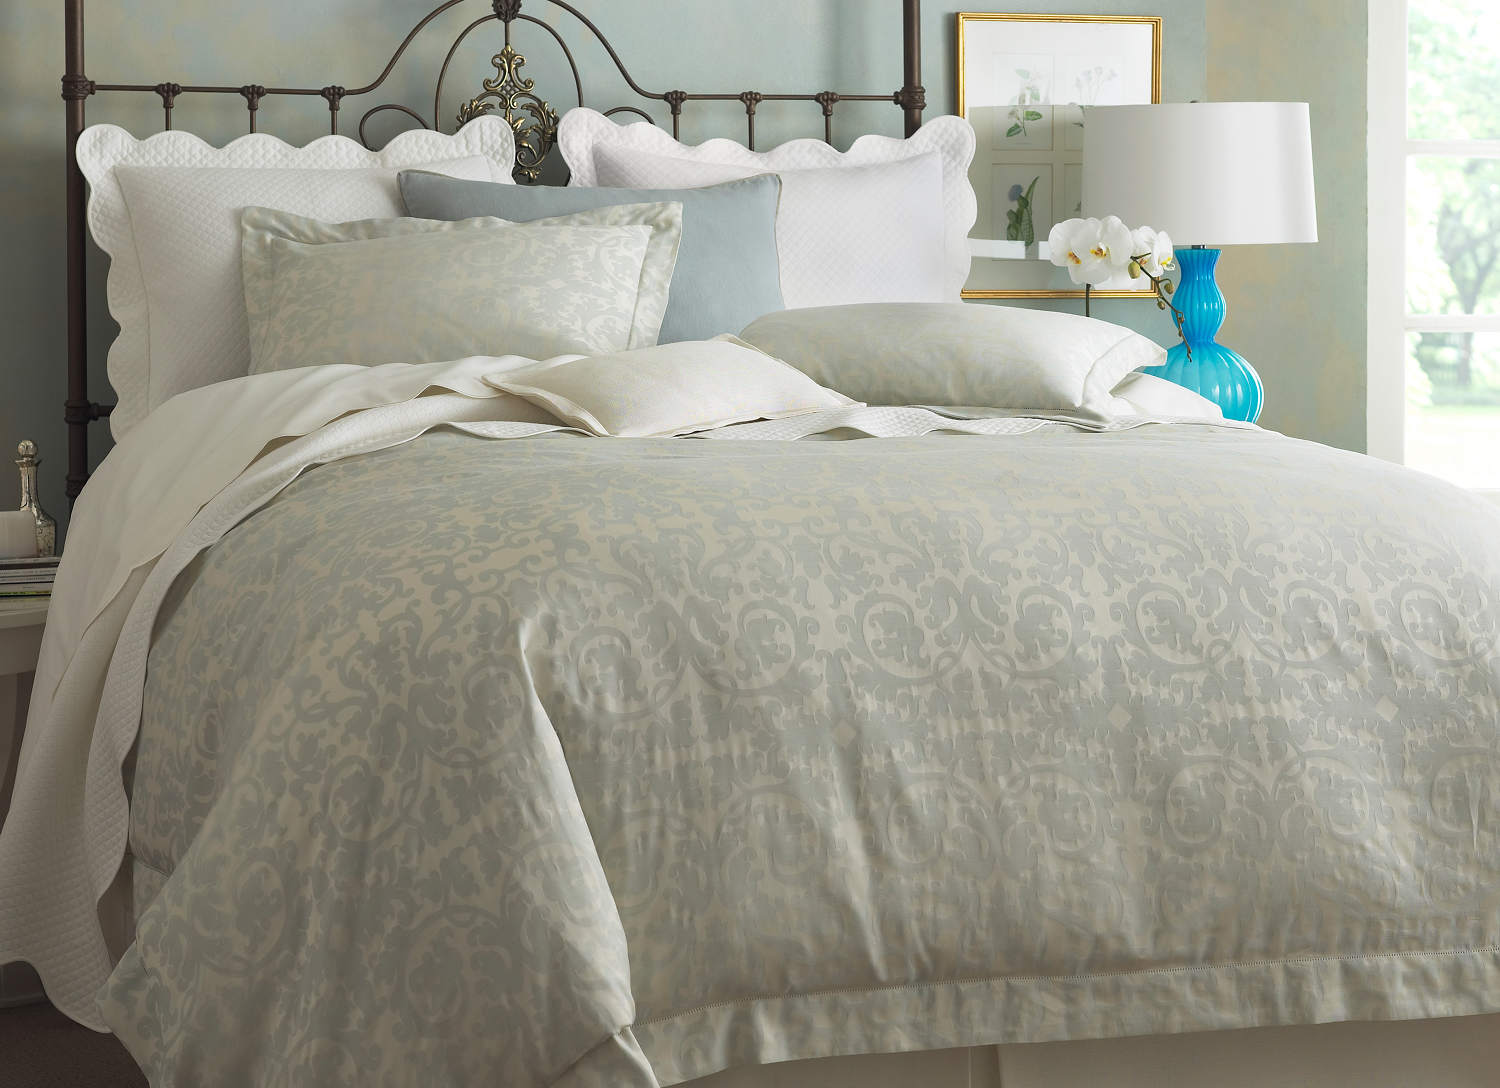 Peacock Alley Marcella Bedding